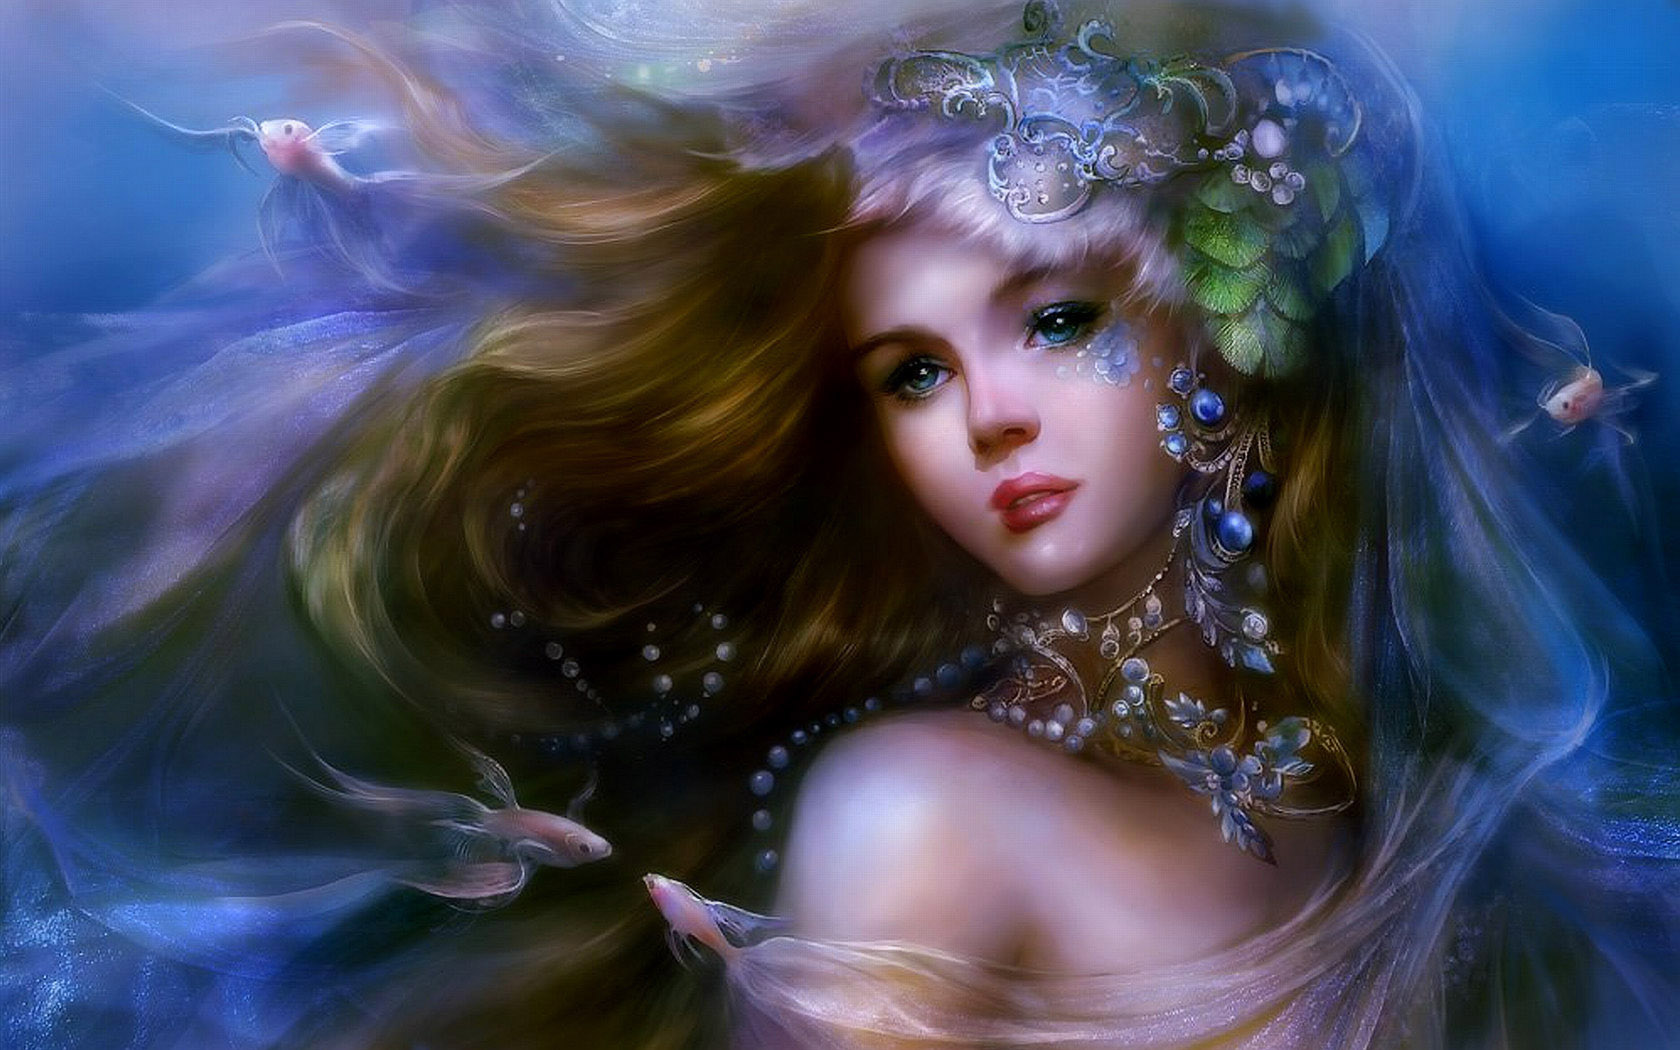 Fantasy - Women  - Dreamy Sea Beauty Wallpaper